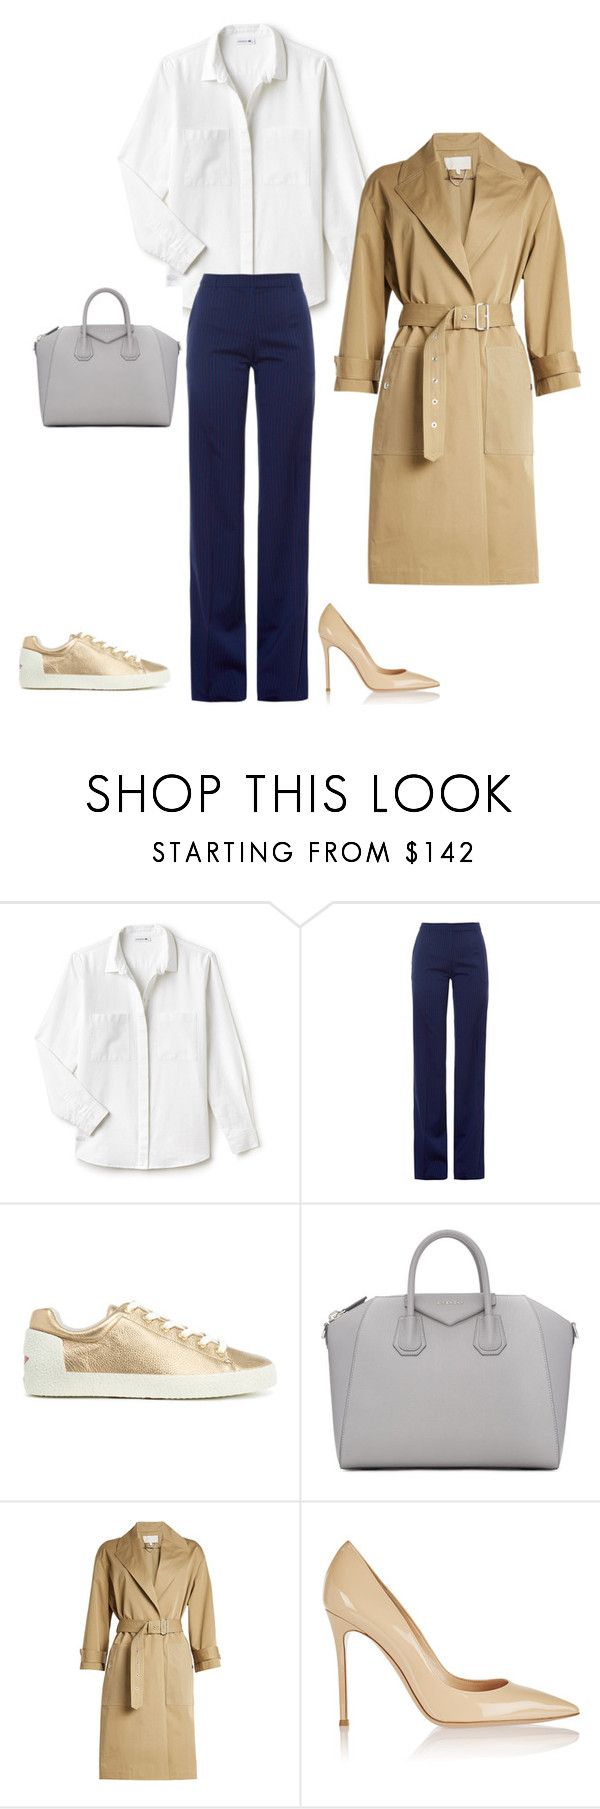 12 by asvetik on Polyvore featuring мода, Lacoste, Vanessa Bruno, Altuzarra, Gianvito Rossi and Givenchy